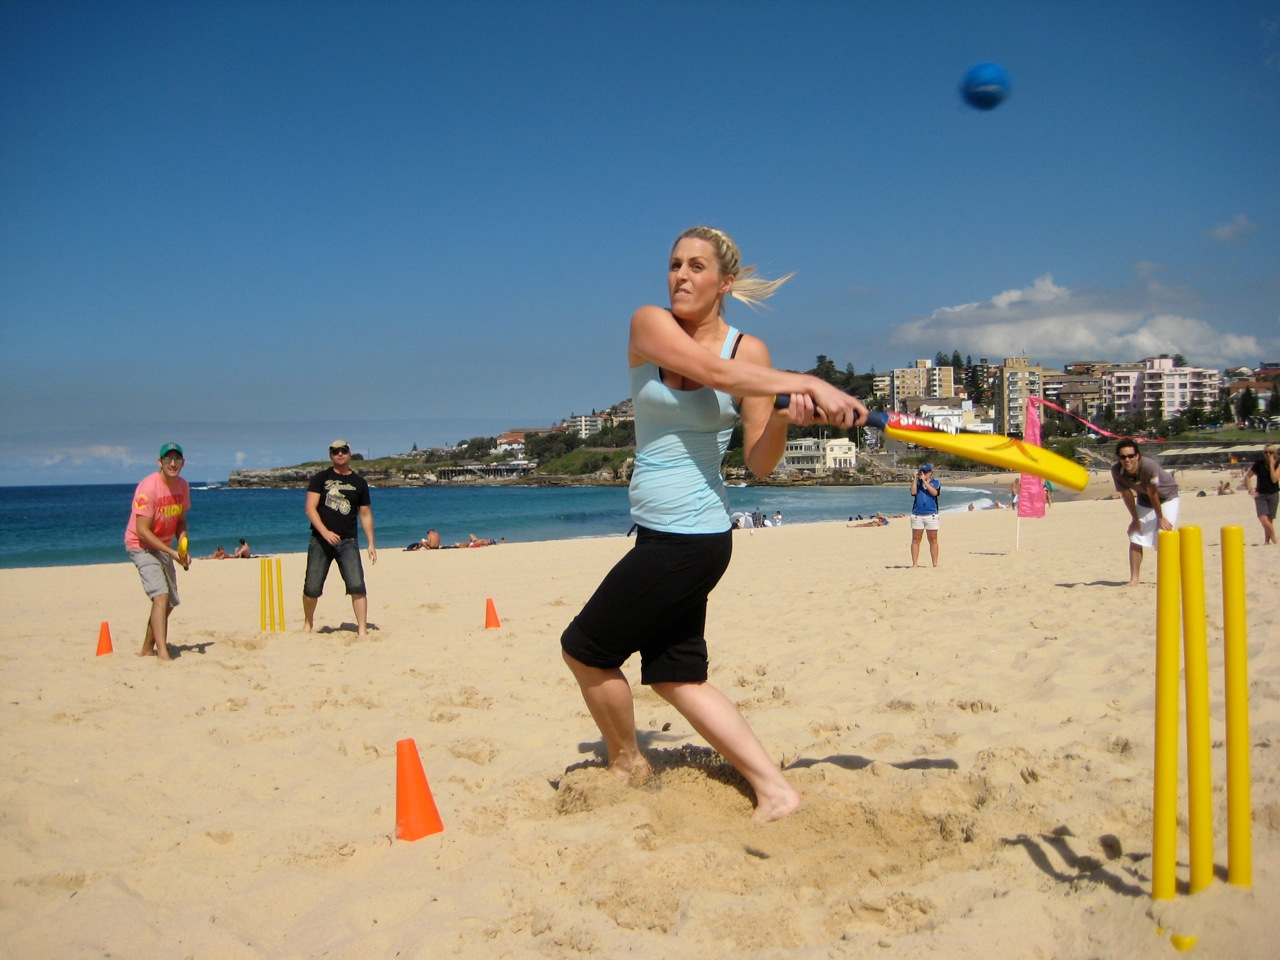 beach activities team building activities sydney coogee manly bondi